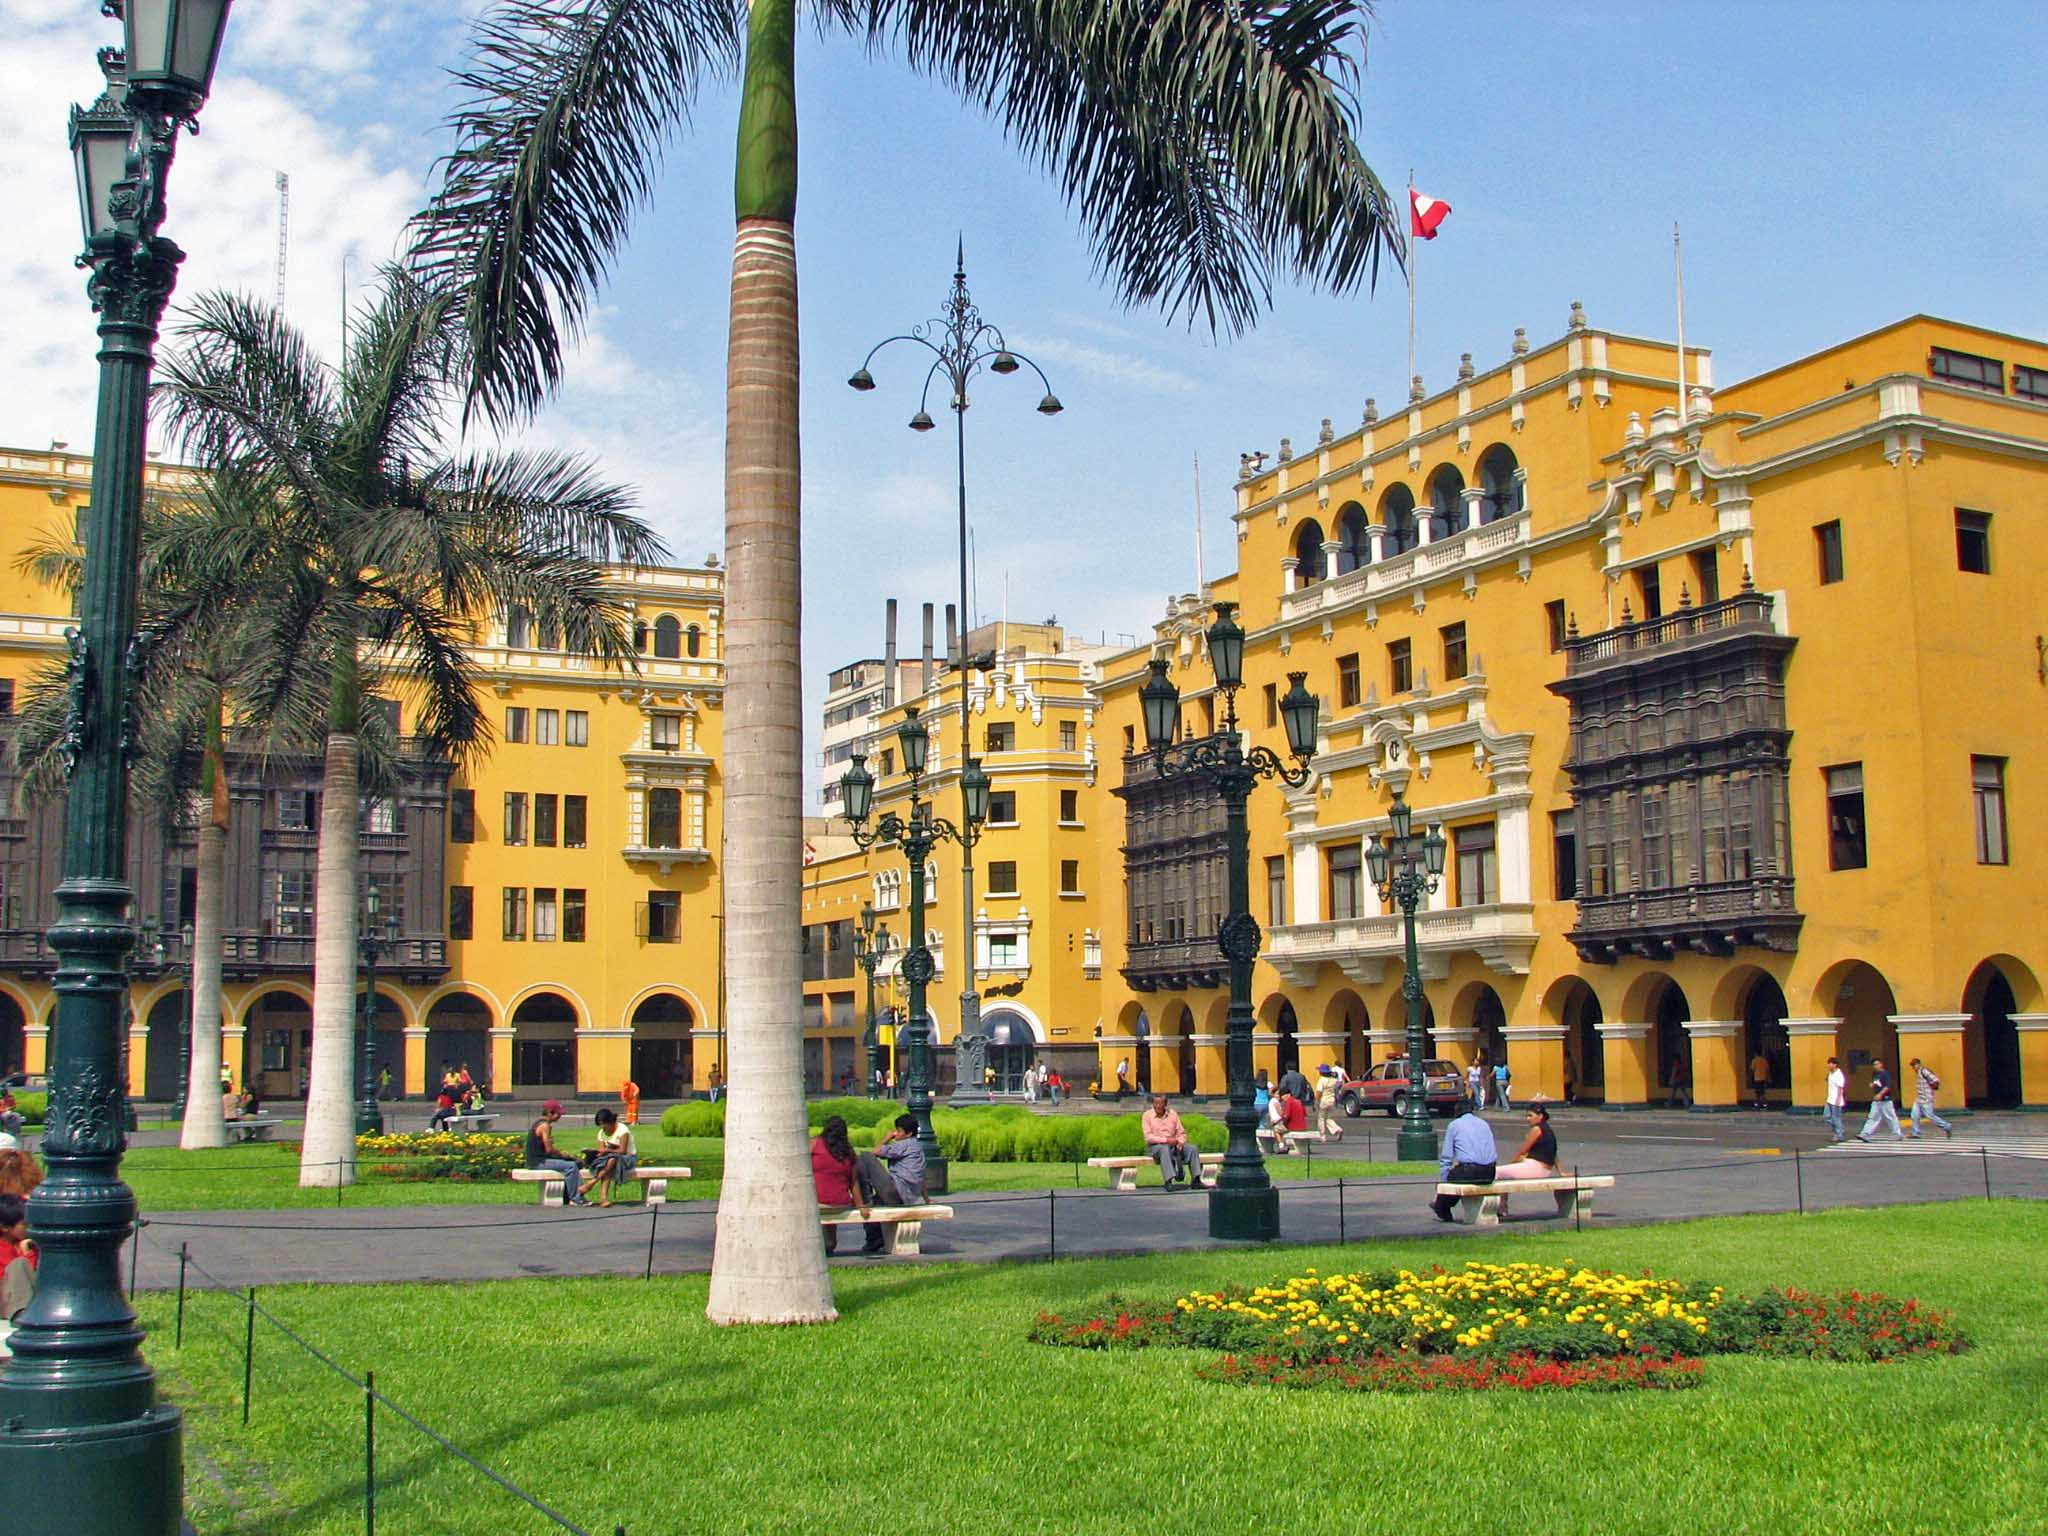 the capital of the Republic of Peru